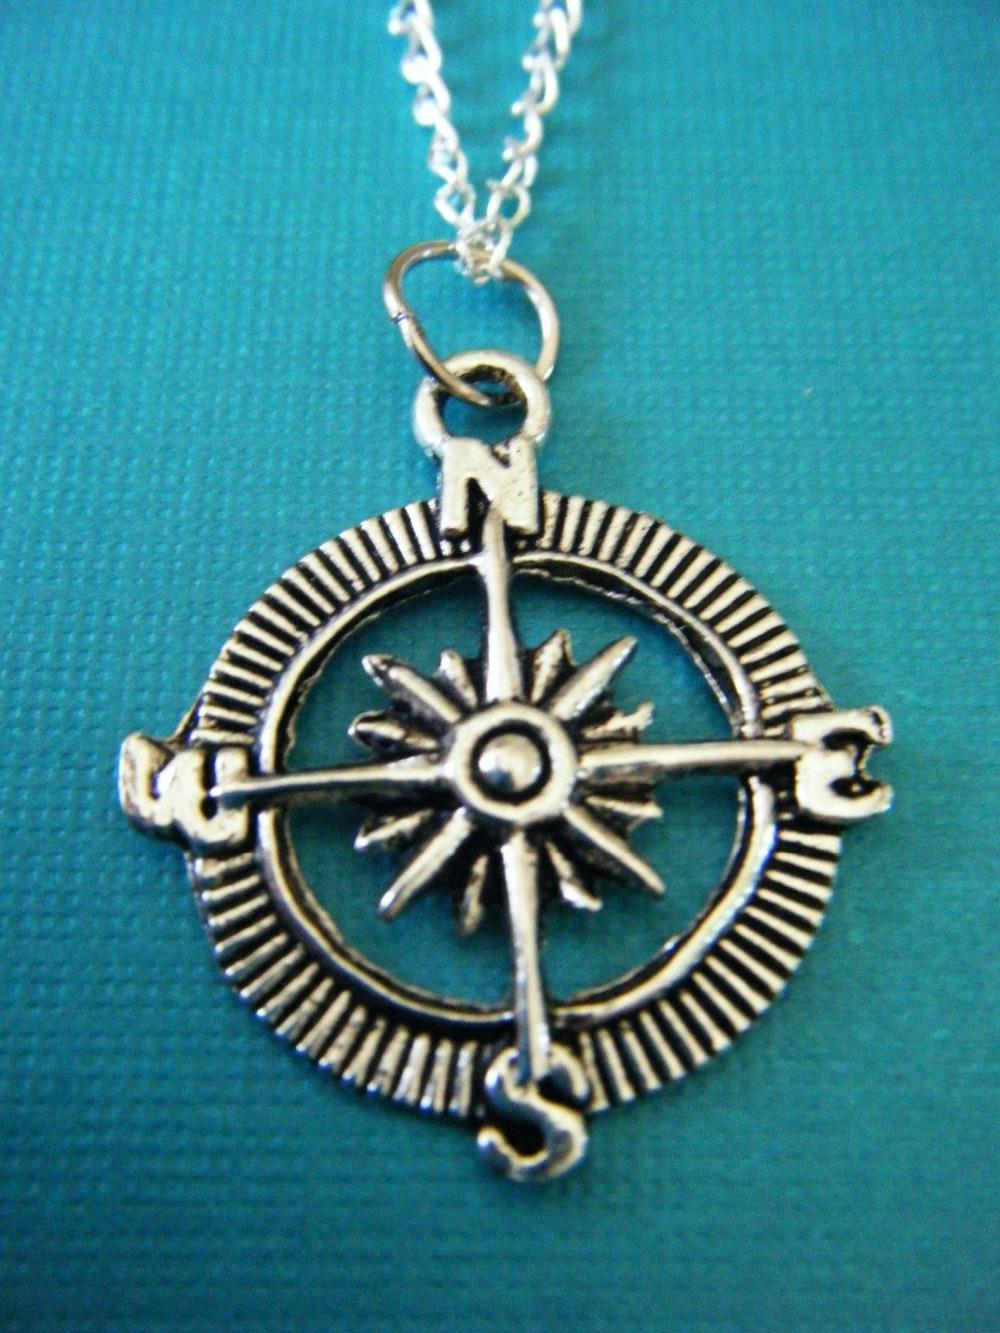 """Fashion Jewelry Vintage Silver """"Compass"""" Charms Statement Choker Short Necklace Pendant Free shipping V168(China (Mainland))"""